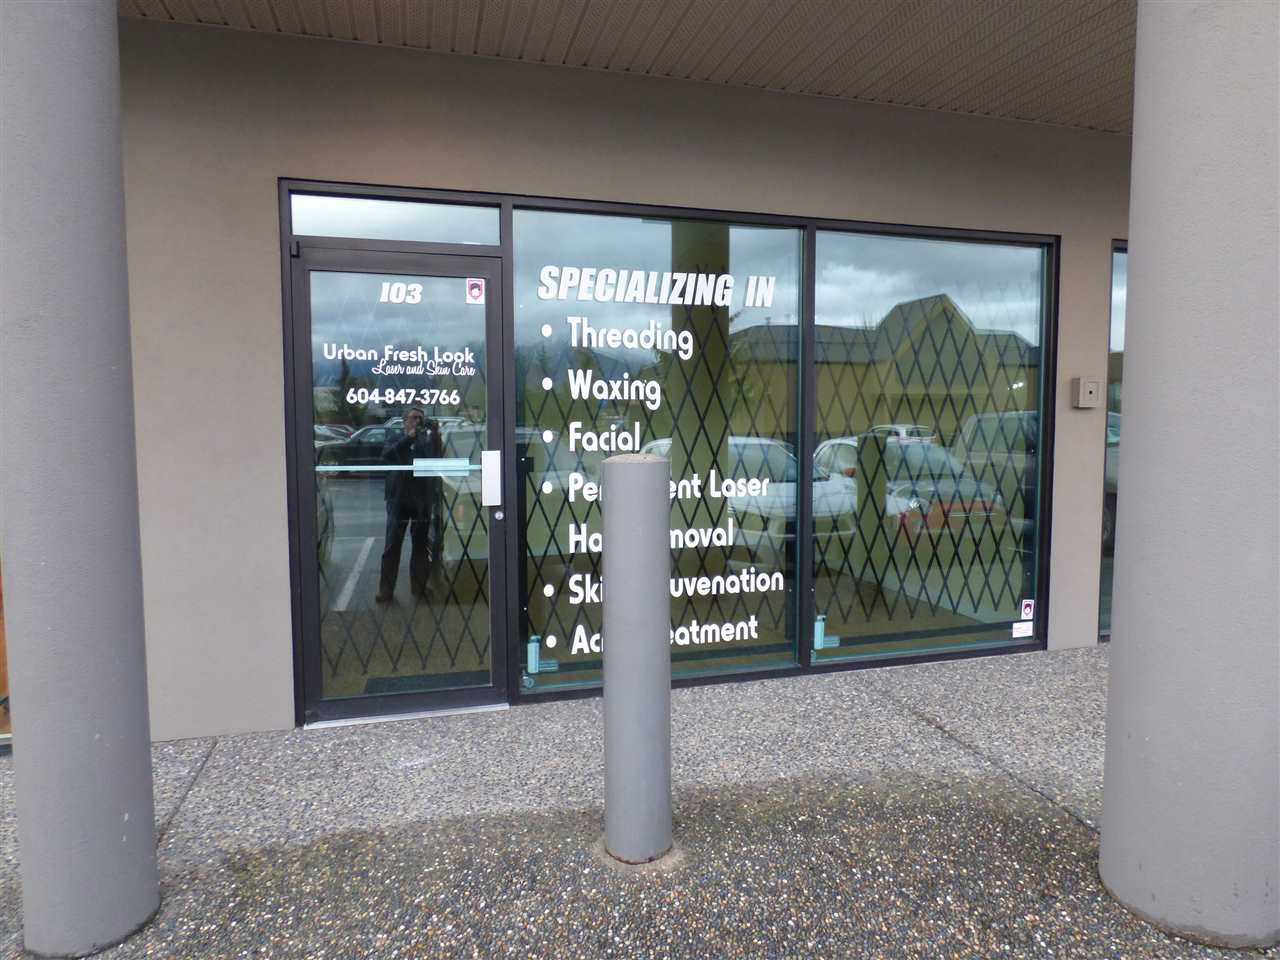 Main Photo: 103 45389 LUCKAKUCK Way in Chilliwack: Sardis West Vedder Rd Commercial for lease (Sardis)  : MLS®# C8004873